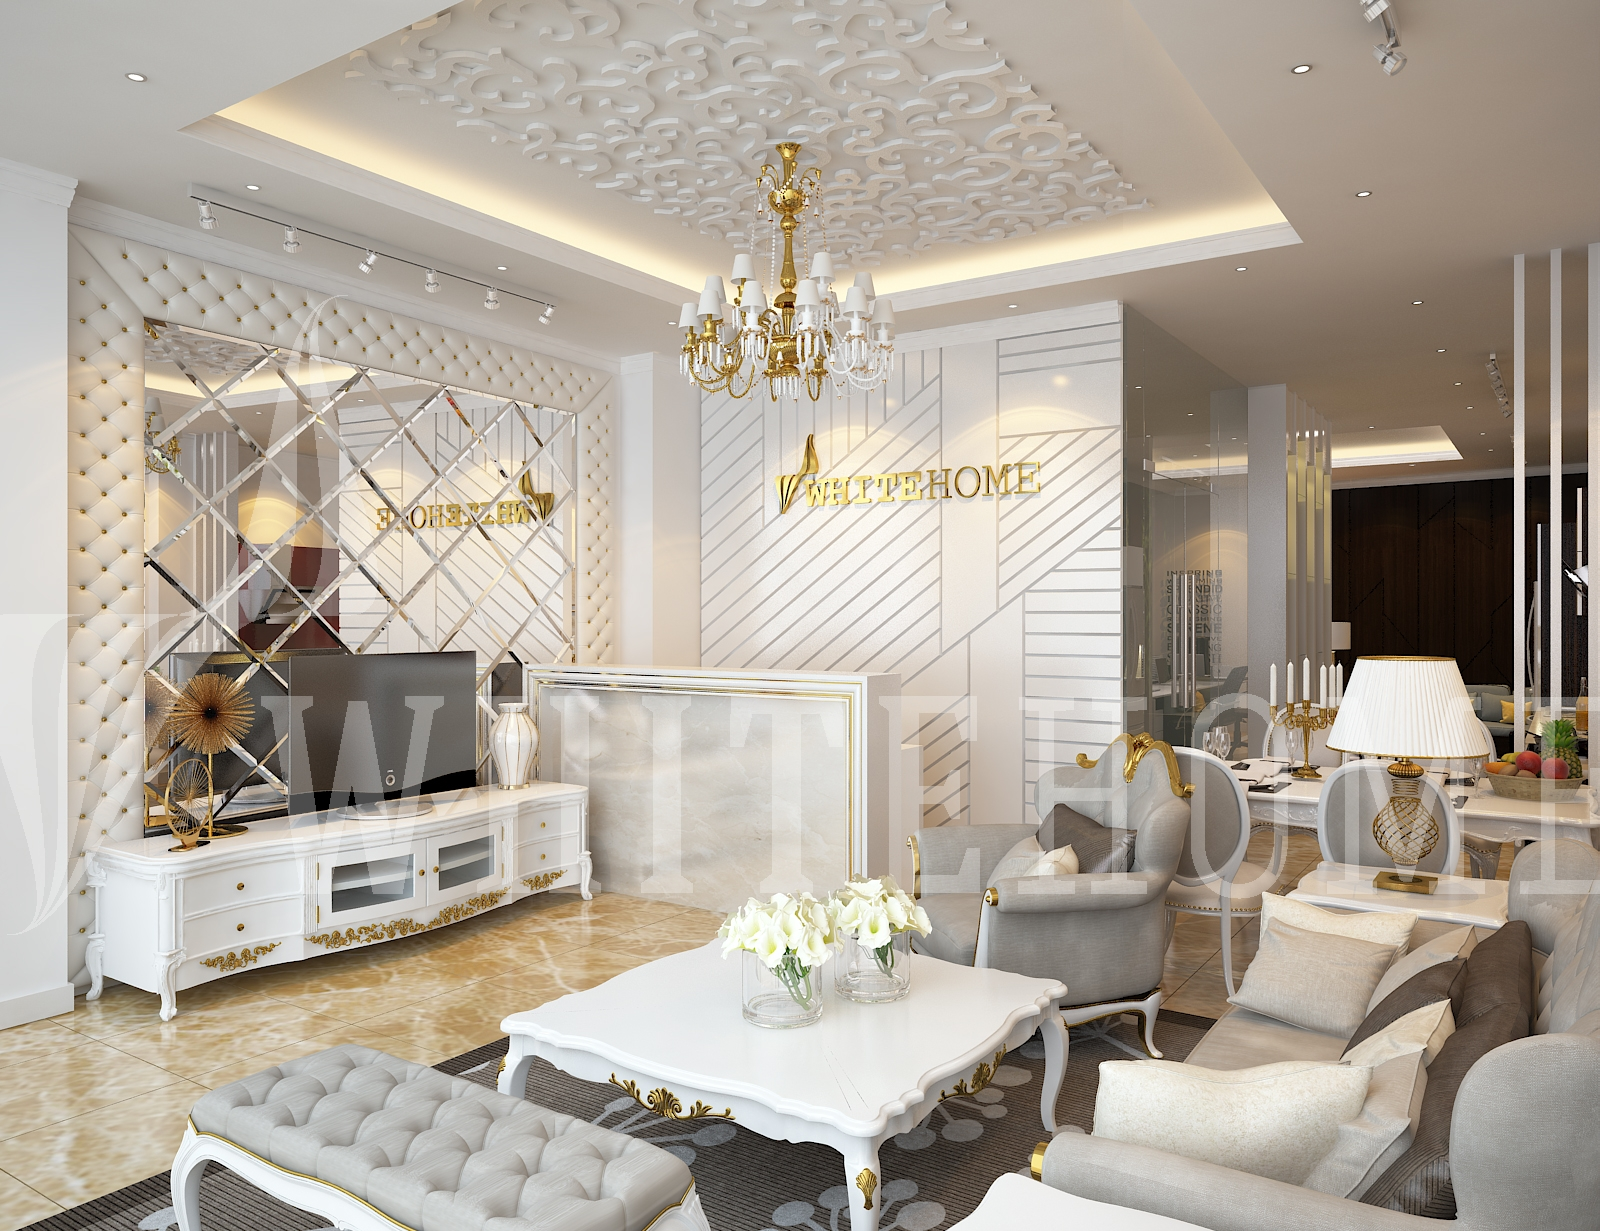 White Home - Showroom nội thất